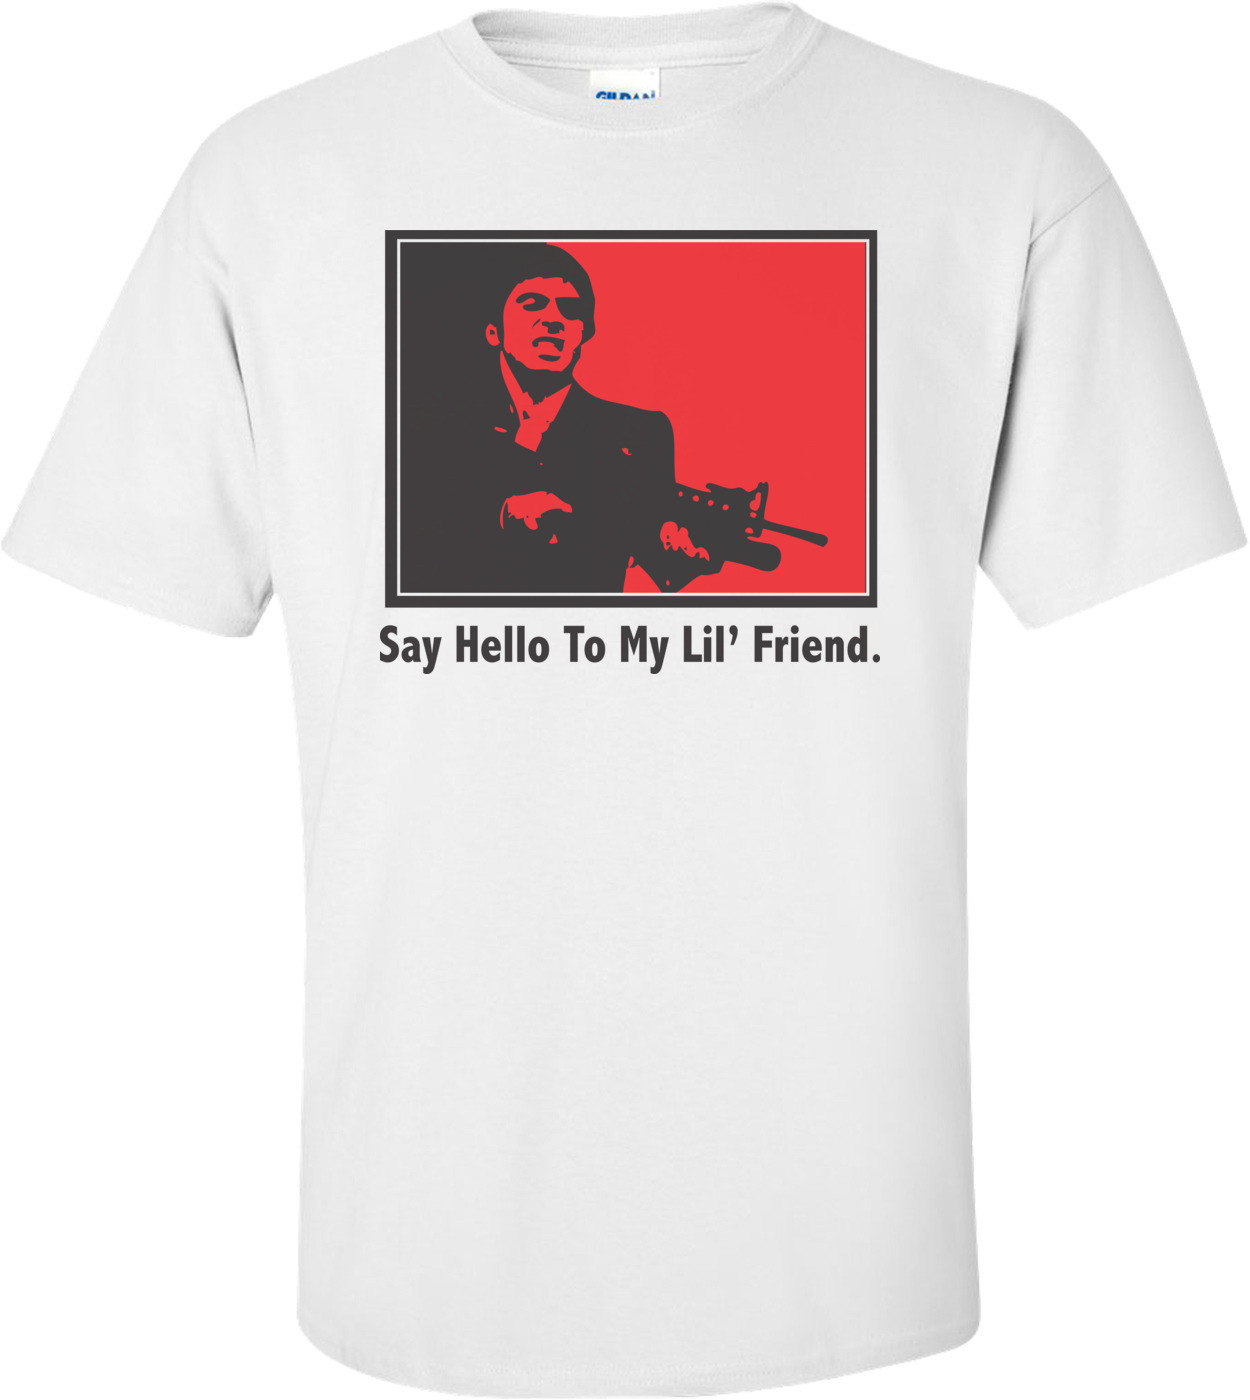 Say Hello To My Lil' Friend T-shirt